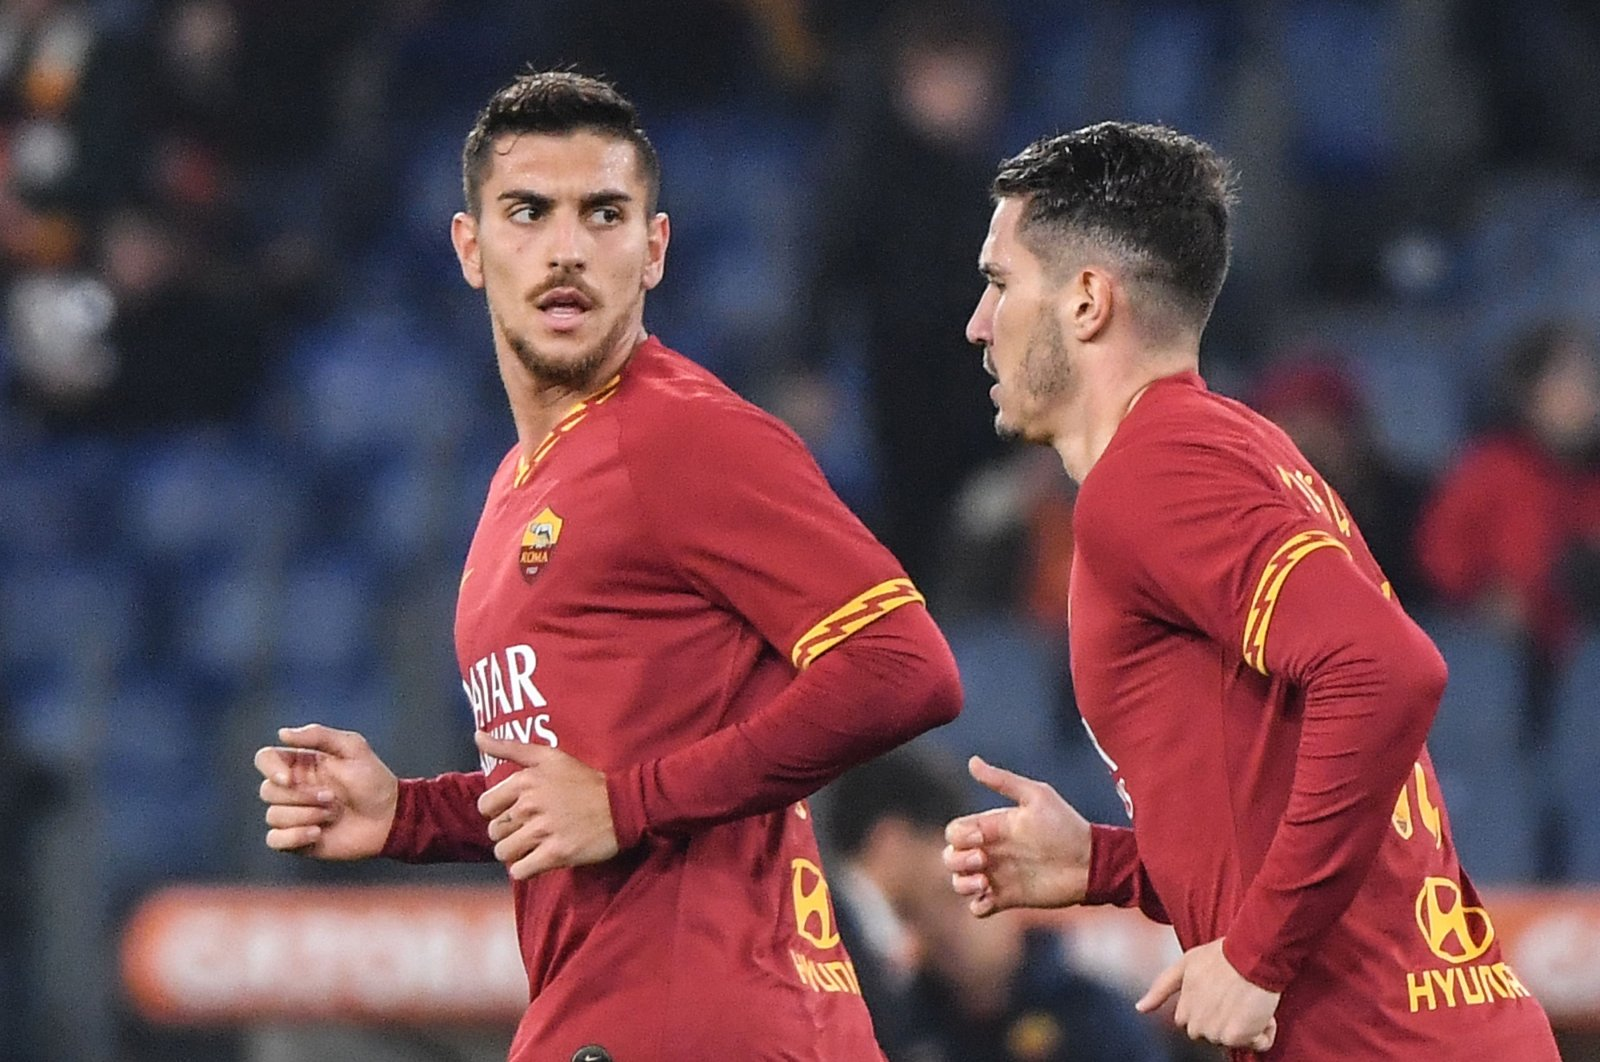 AS Roma's Turkish defender Mert Çetin (R) celebrates a goal with Italian midfielder Lorenzo Pellegrini during the Italian Serie A football match between AS Roma and Spal at the Olympic Stadium in Rome, Italy, Dec. 15, 2019. (AFP Photo)